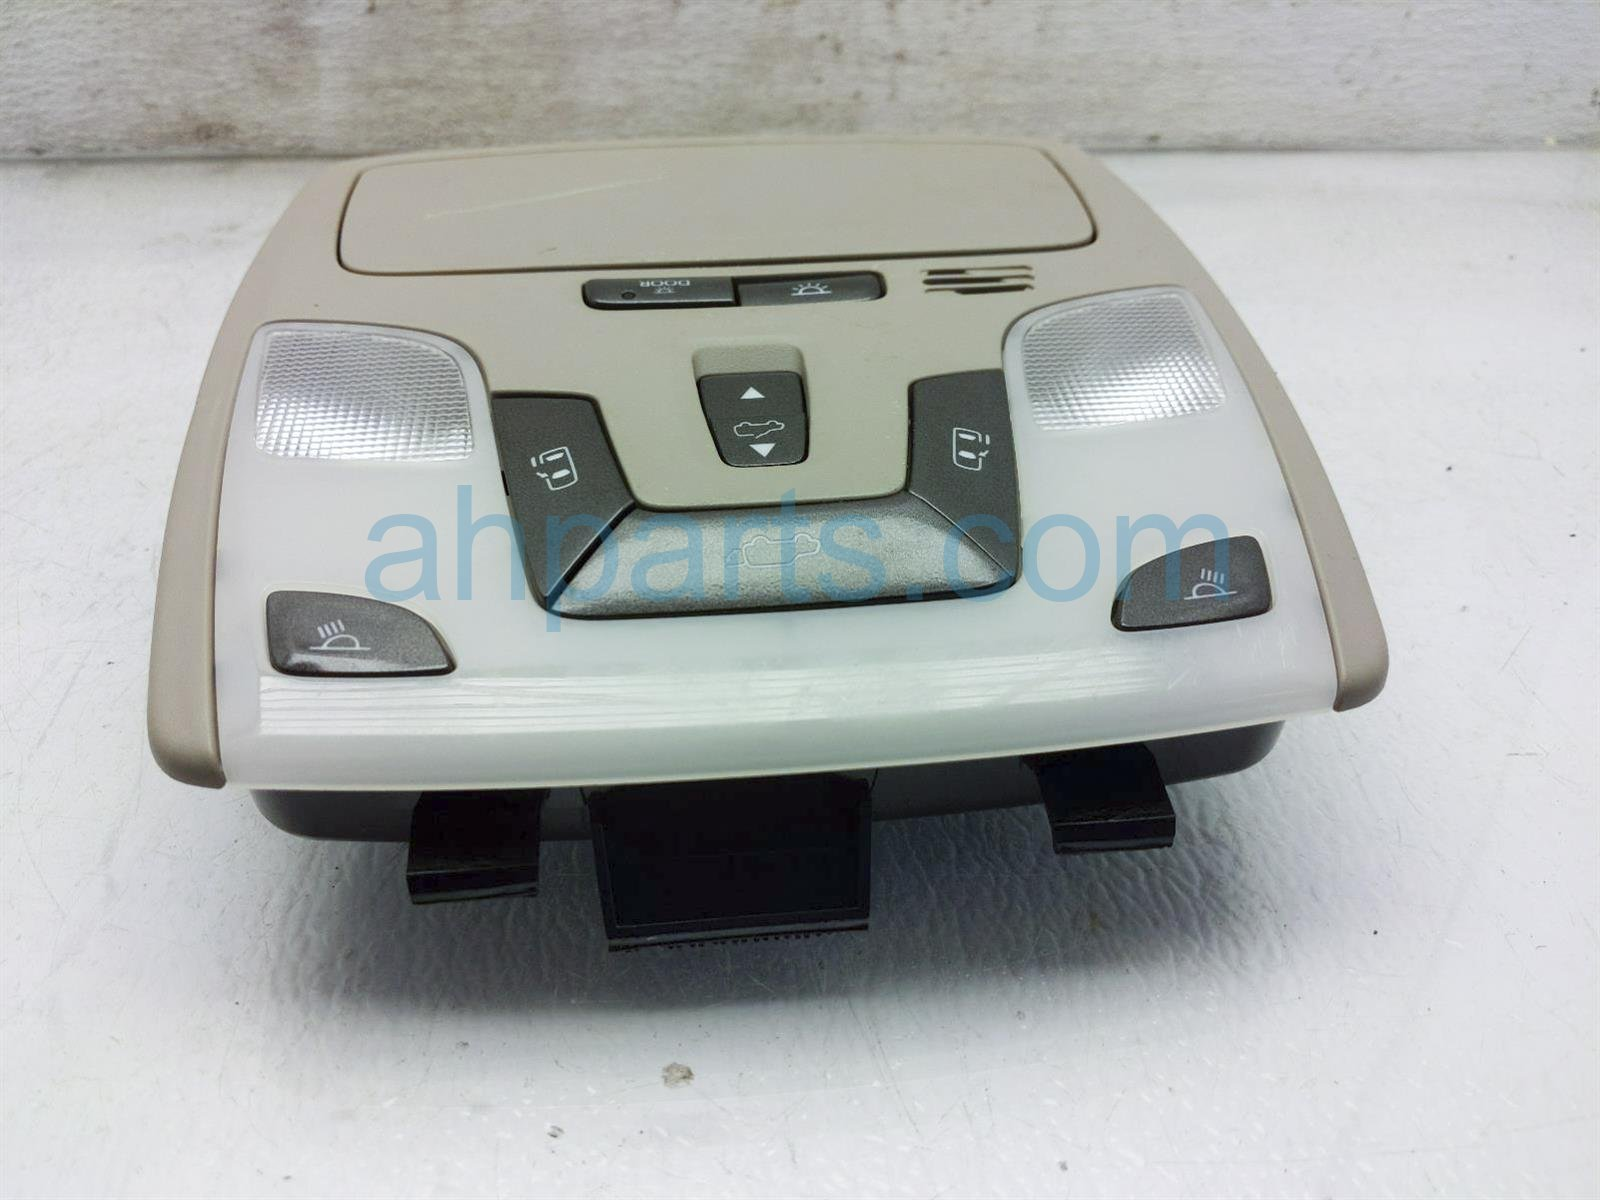 2013 Toyota Sienna Map Light / Overhead Console   Tan 63650 08460 Replacement